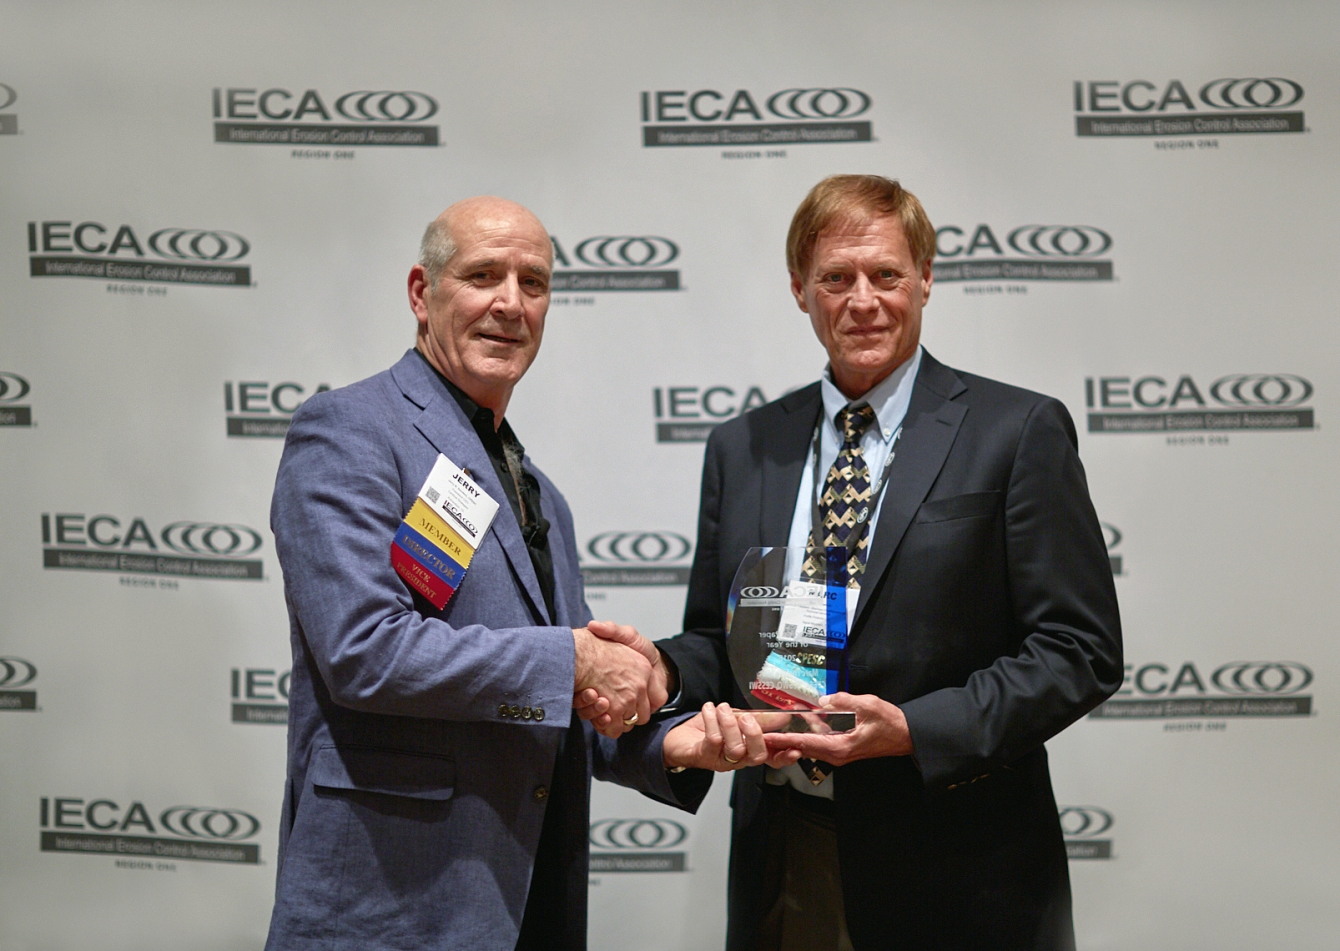 Profile's Marc S. Theisen (right) receiving the 2018 IECA Technical Paper of the Year Award.